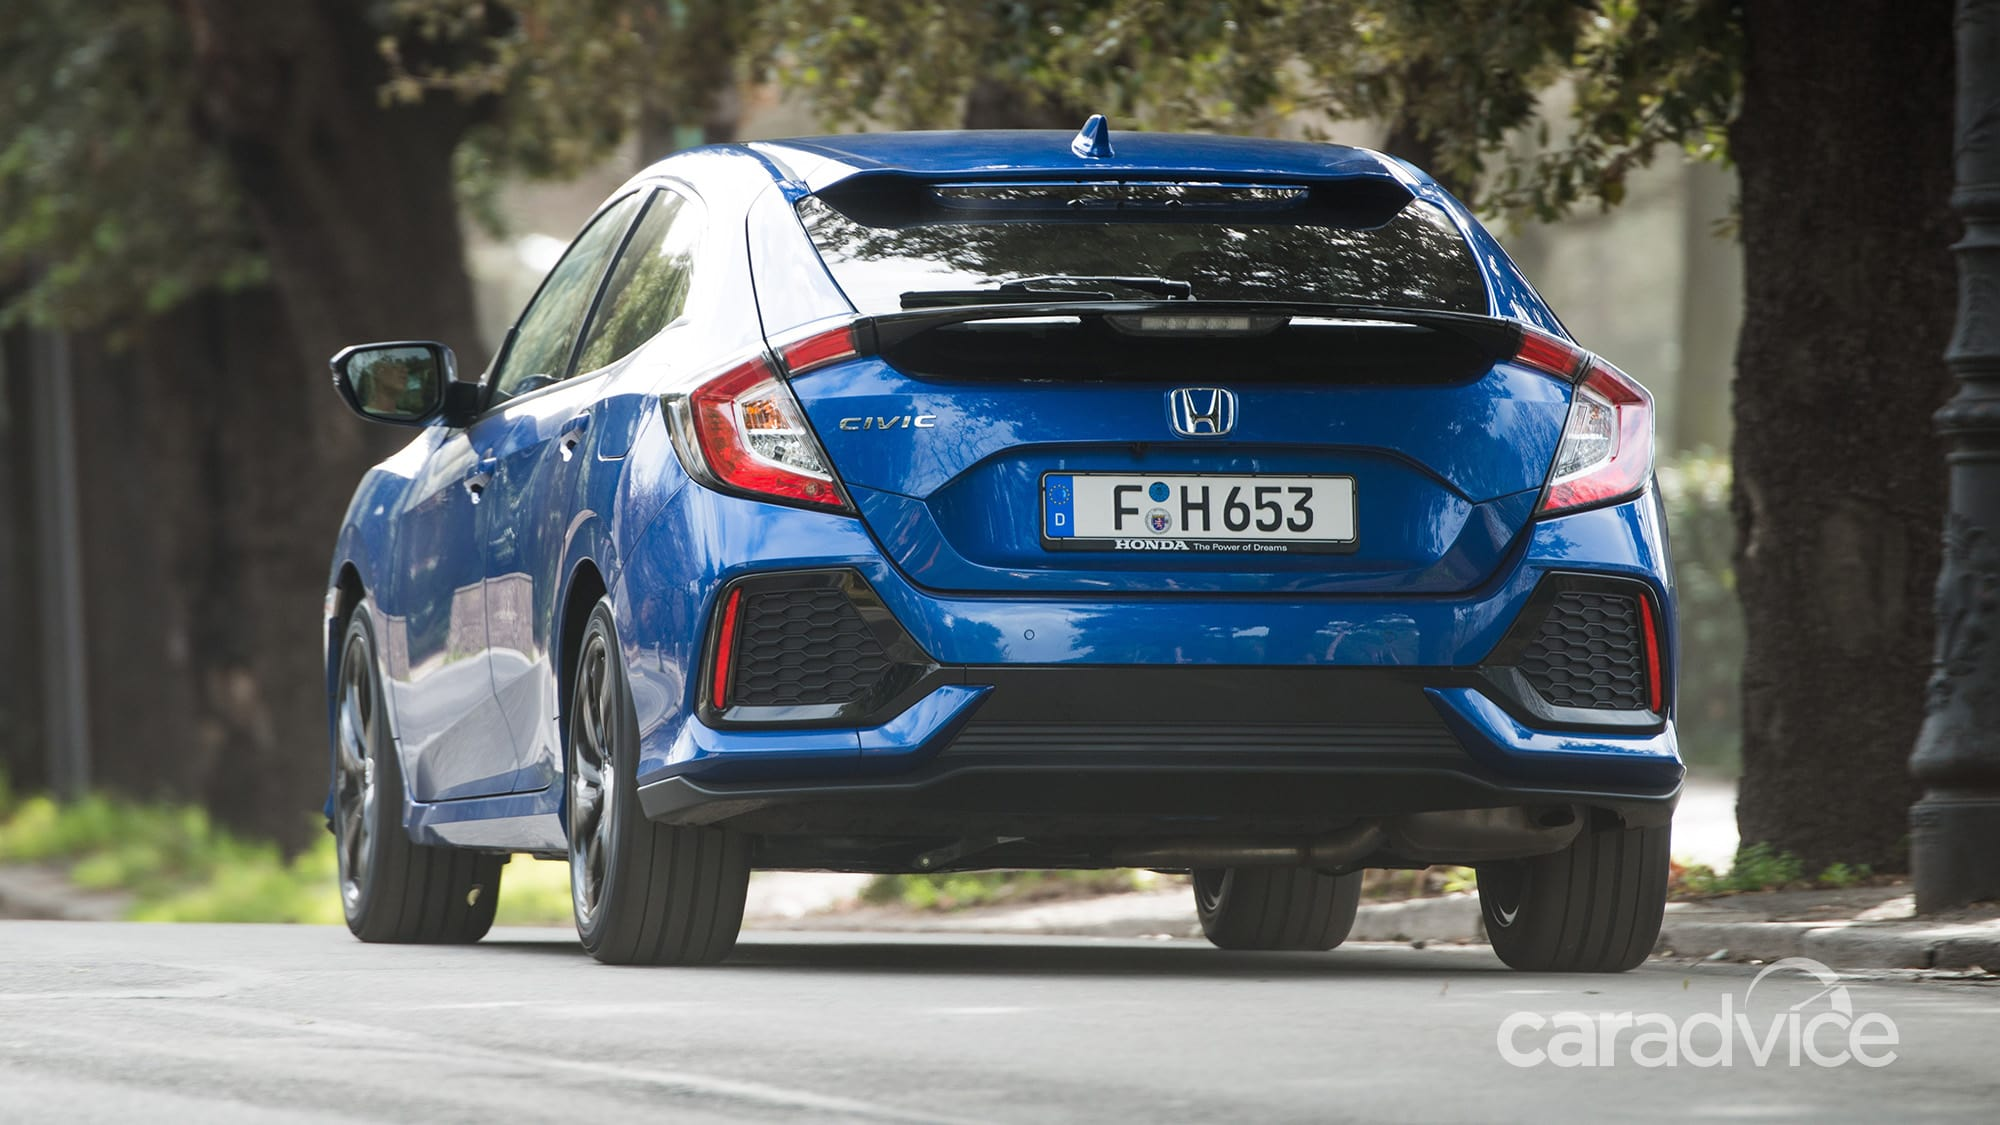 honda-civic-2018-ban-may-dau-so-huu-hop-so-tu-dong-9-cap